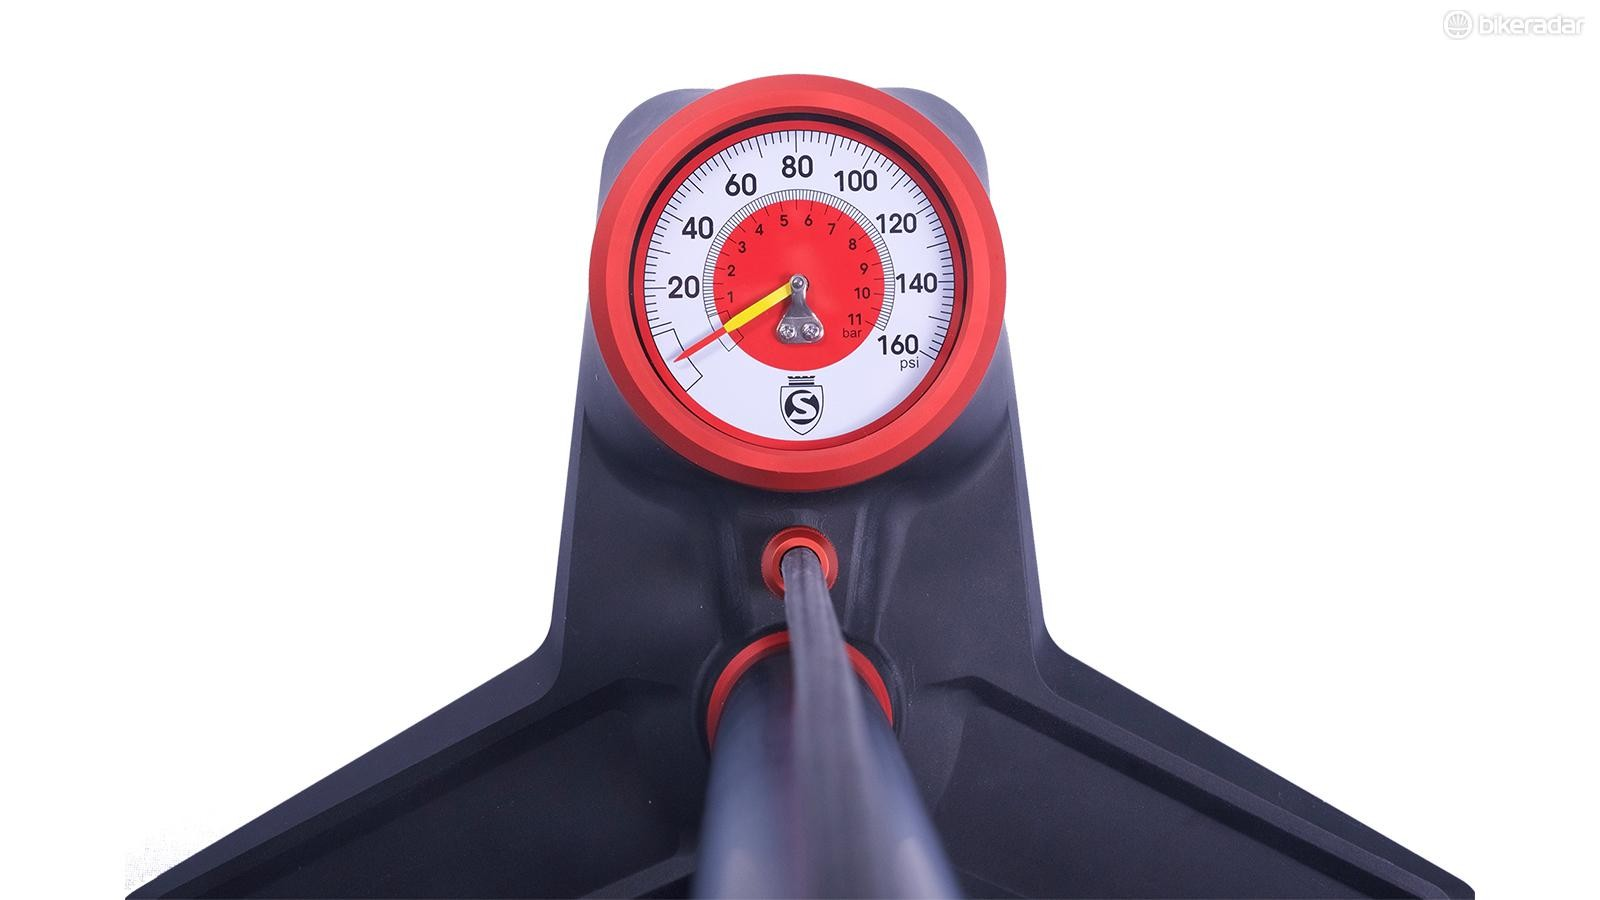 The SuperPista's gauge is bigger than the original, introduced in 1987